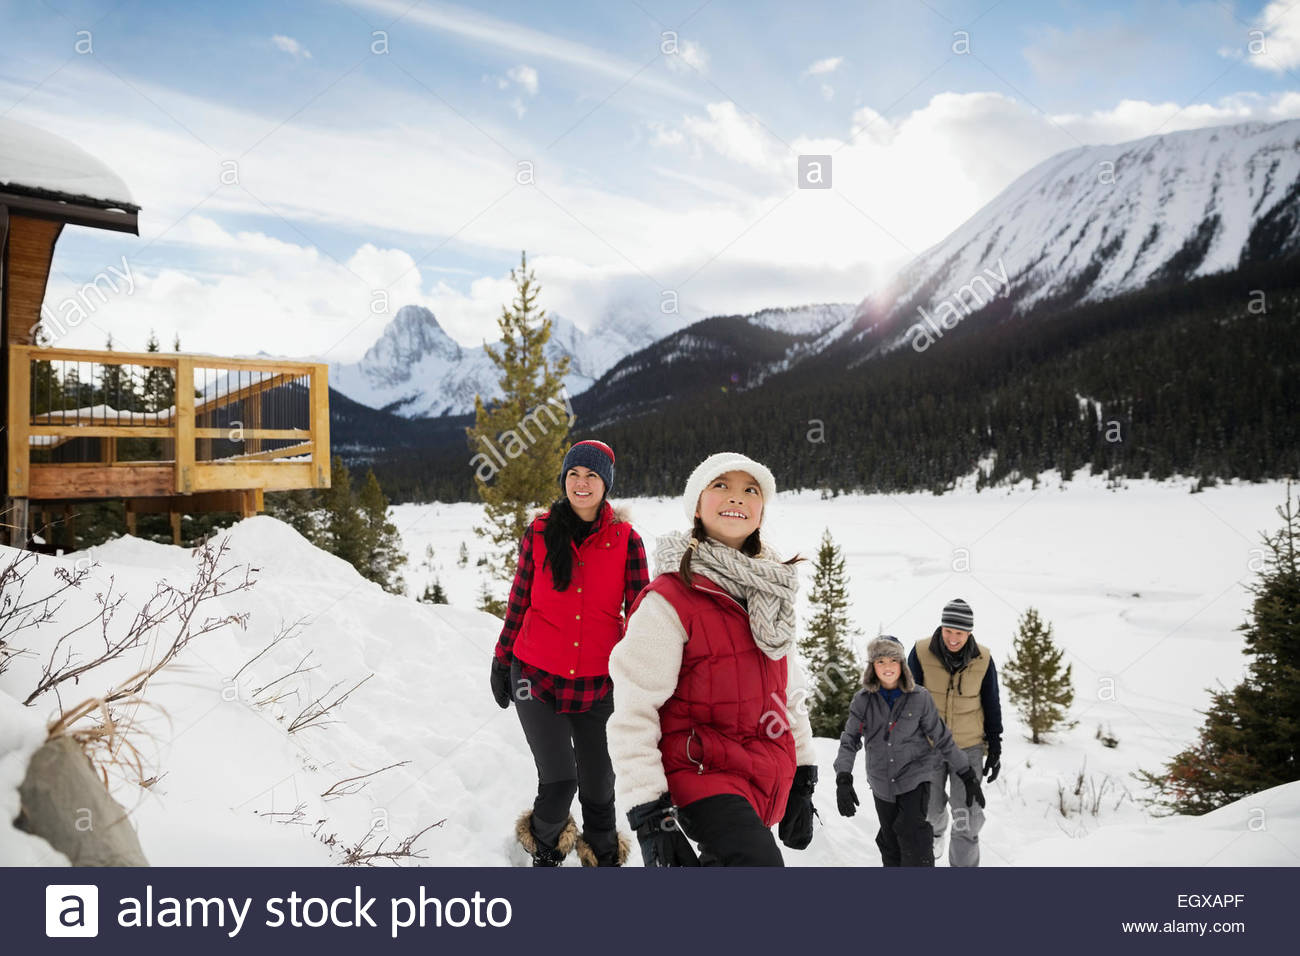 Family in snow below mountains - Stock Image